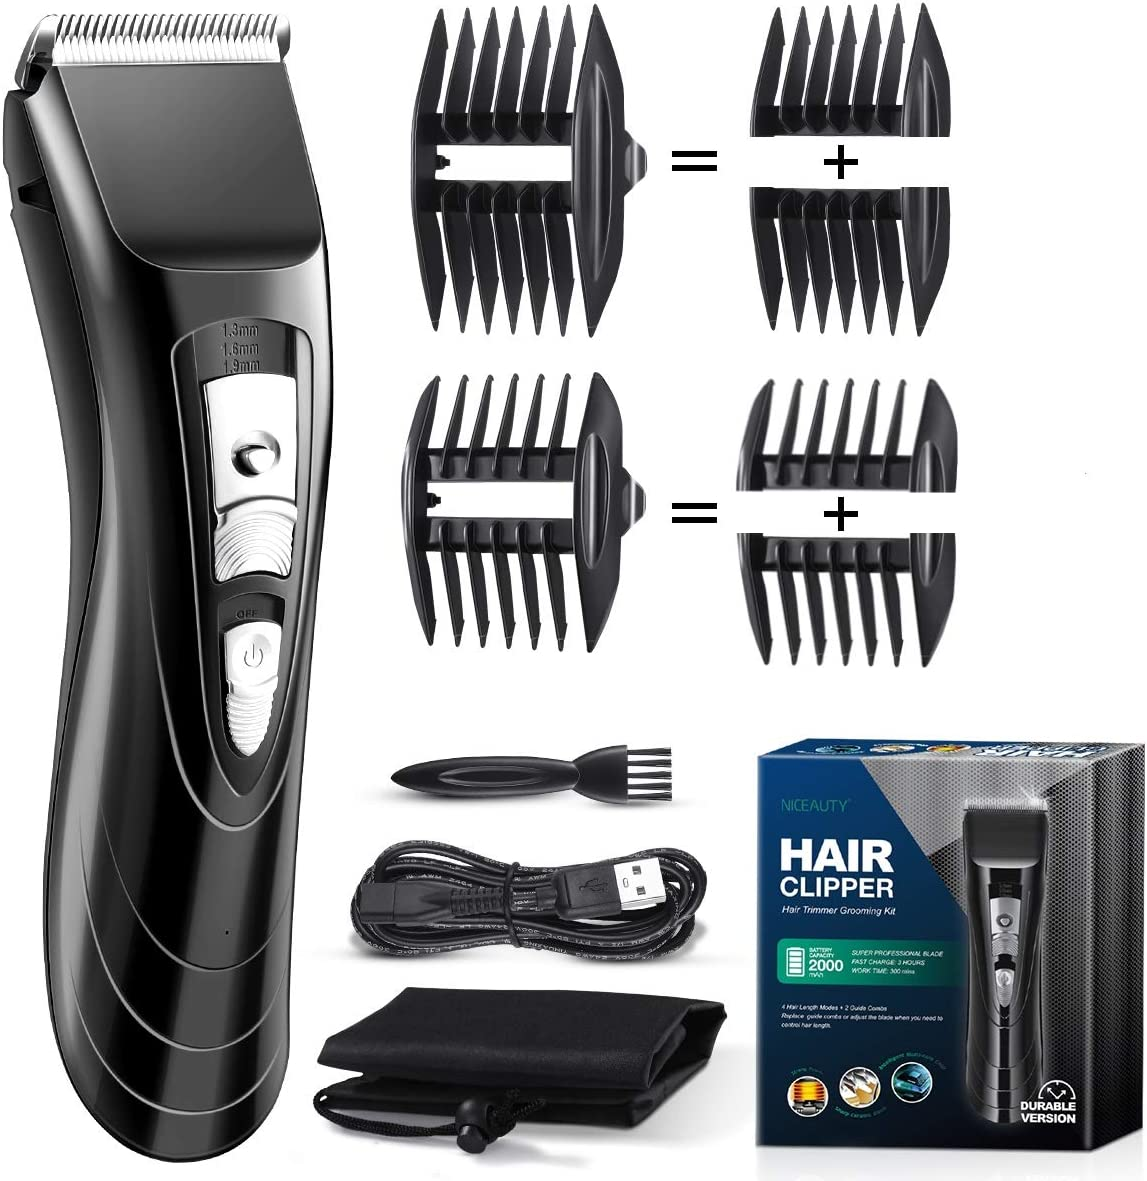 Electric Hair Clippers for Men, Electric Clippers Cordless for Hair Cutting, Professional Quiet Barber Clippers